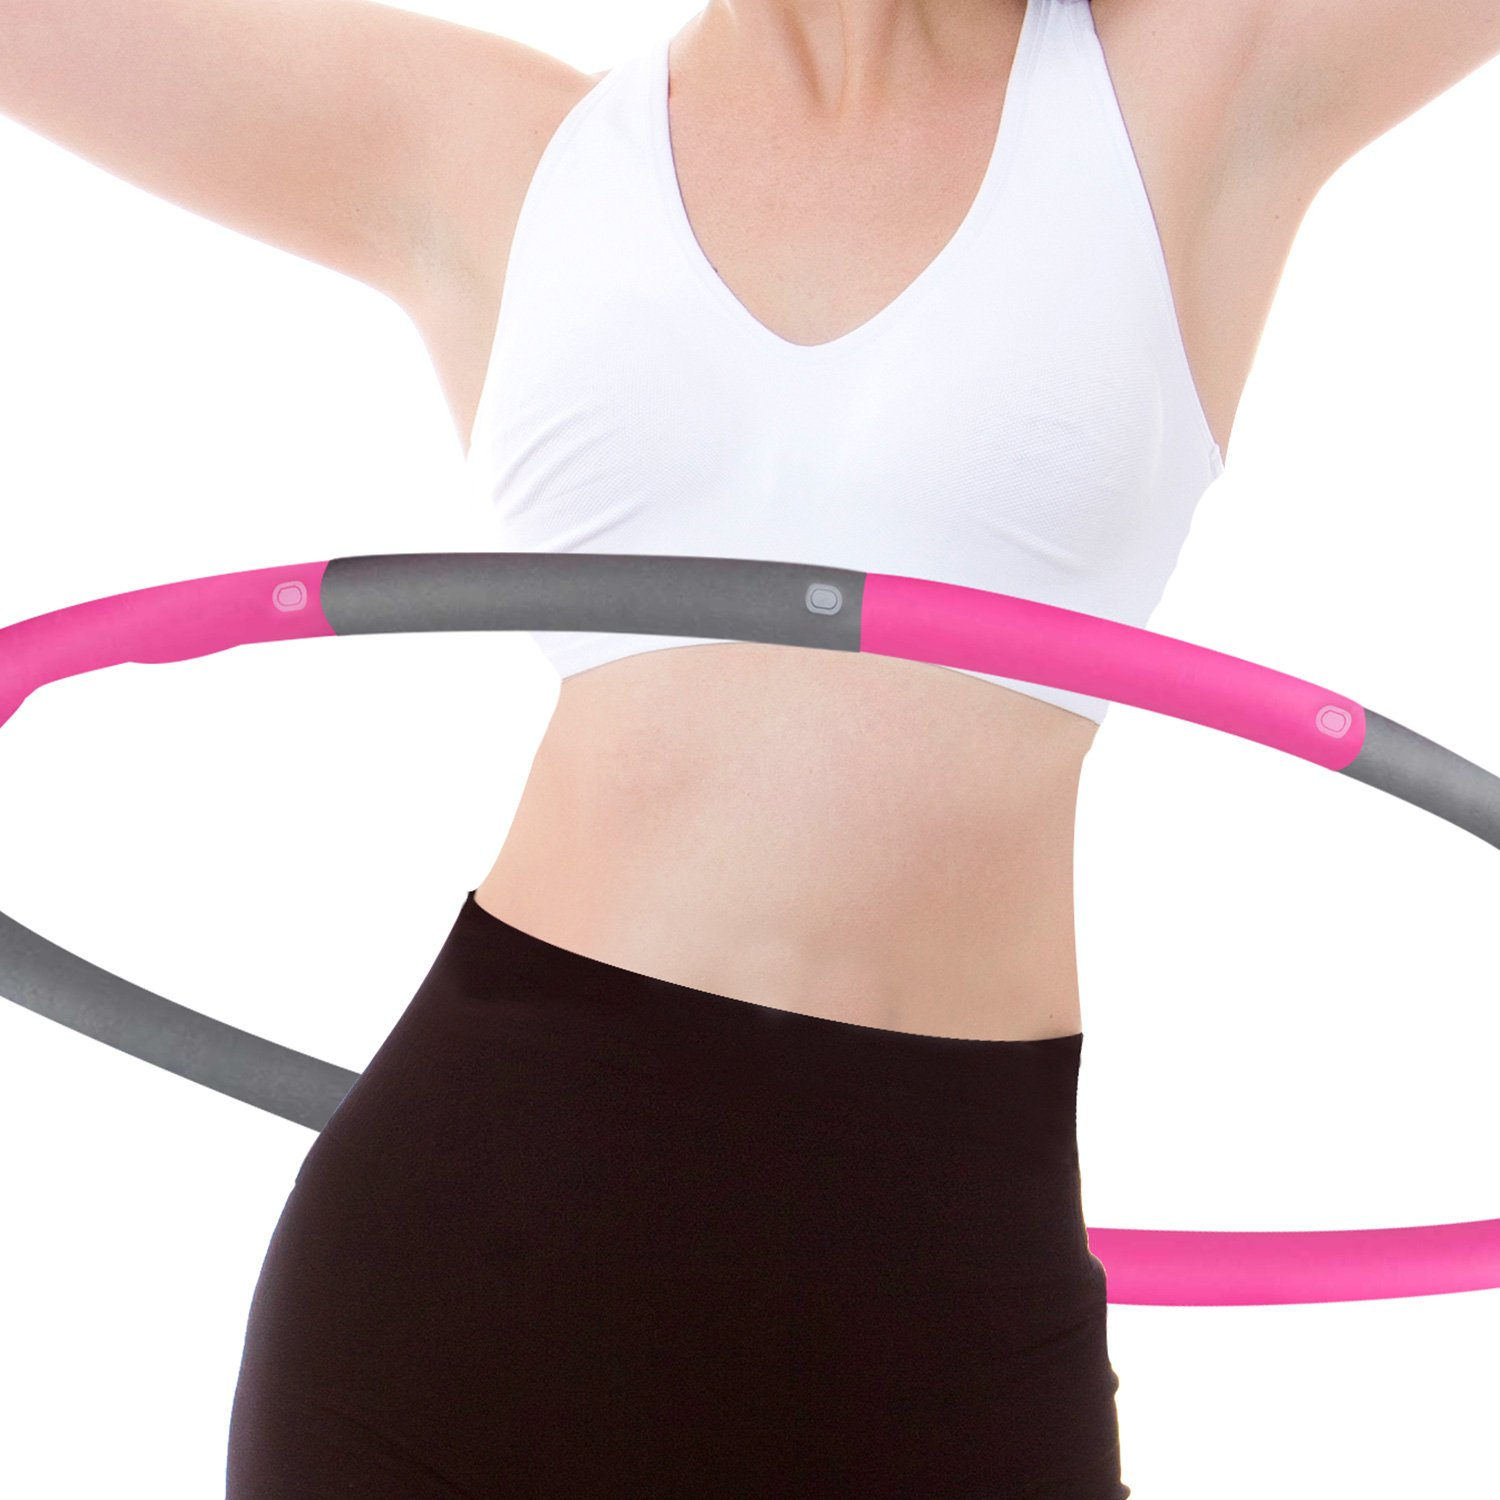 Rioa Fitness Exercise Hula Hoop 2 Pound Weighted Hula Hoop Perfect for Dancing Hot Fitness Workouts and Simply The Funnest Way to Lose Weight Easy to Use Exercise Hoop Fun Easy Way to Workout